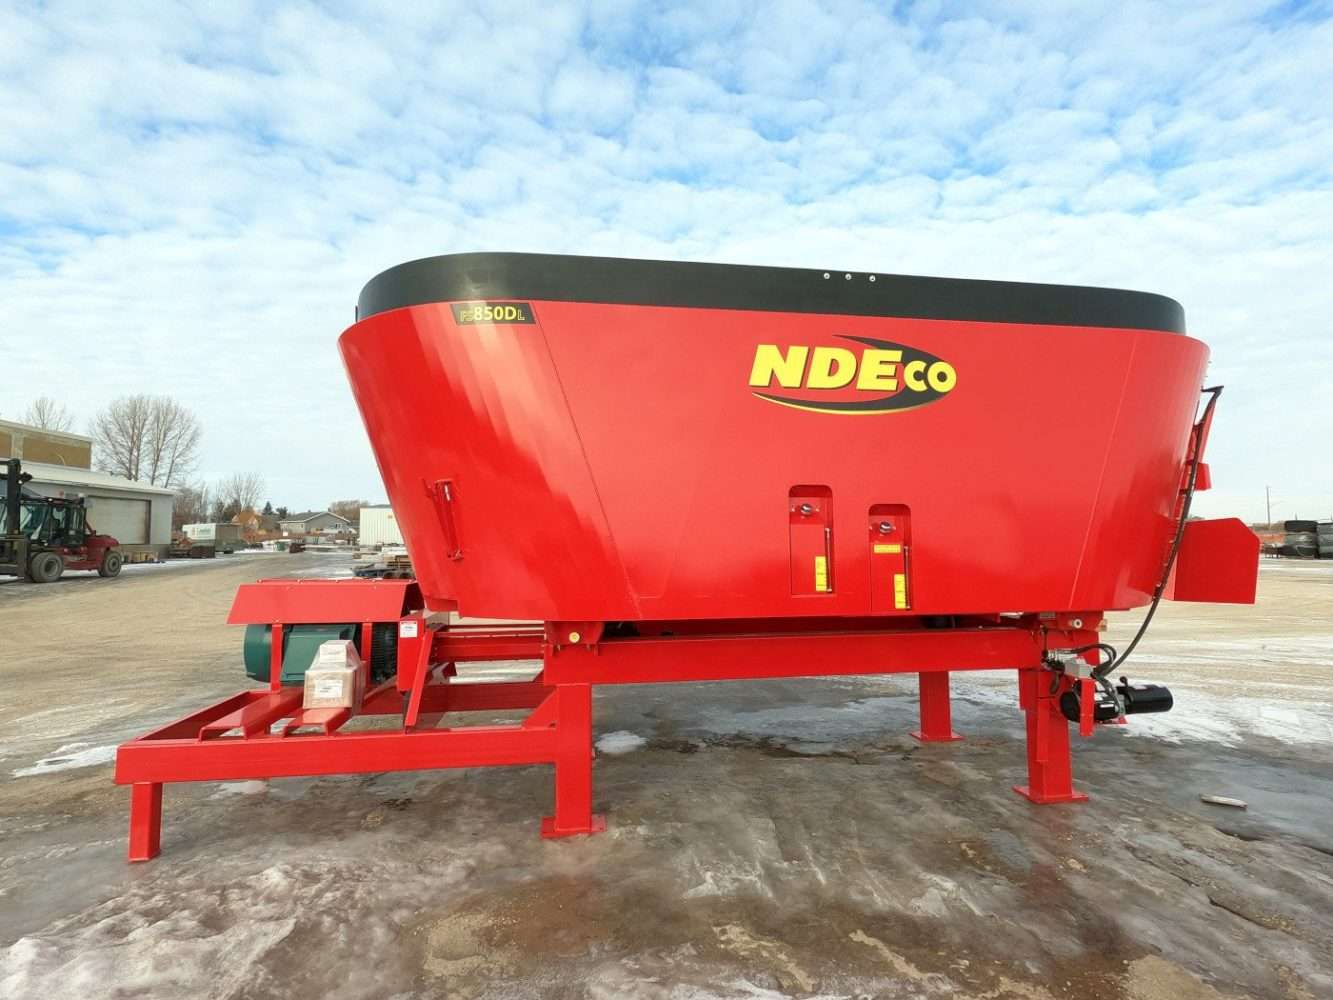 NDEco FS850DL Stationary Dual Auger Vertical Feed Mixer